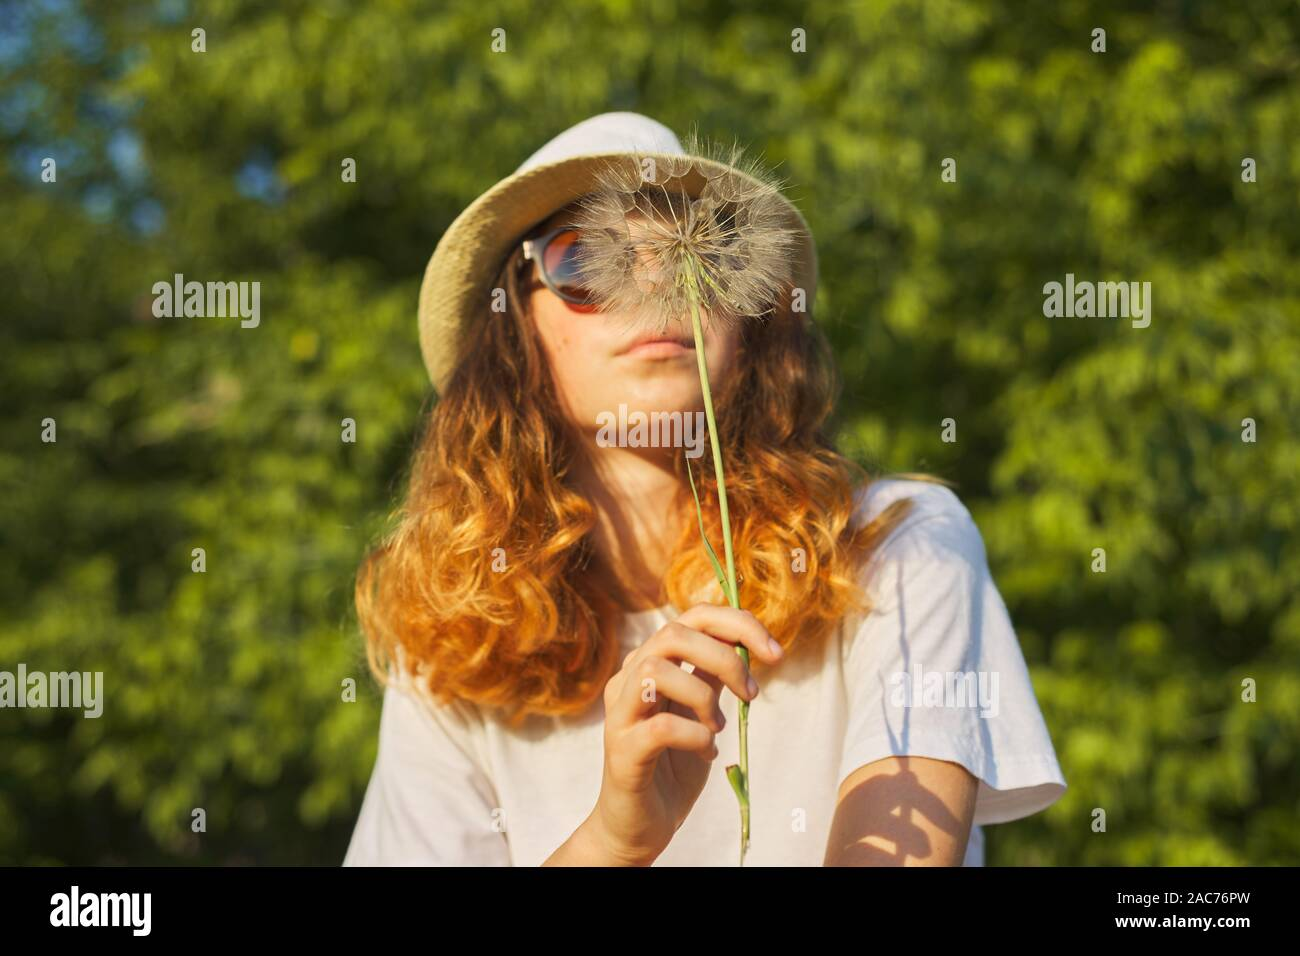 Summer outdoor portrait of romantic teenage girl in hat with big fluffy dandelion in nature, blowing on dry dandelion Stock Photo